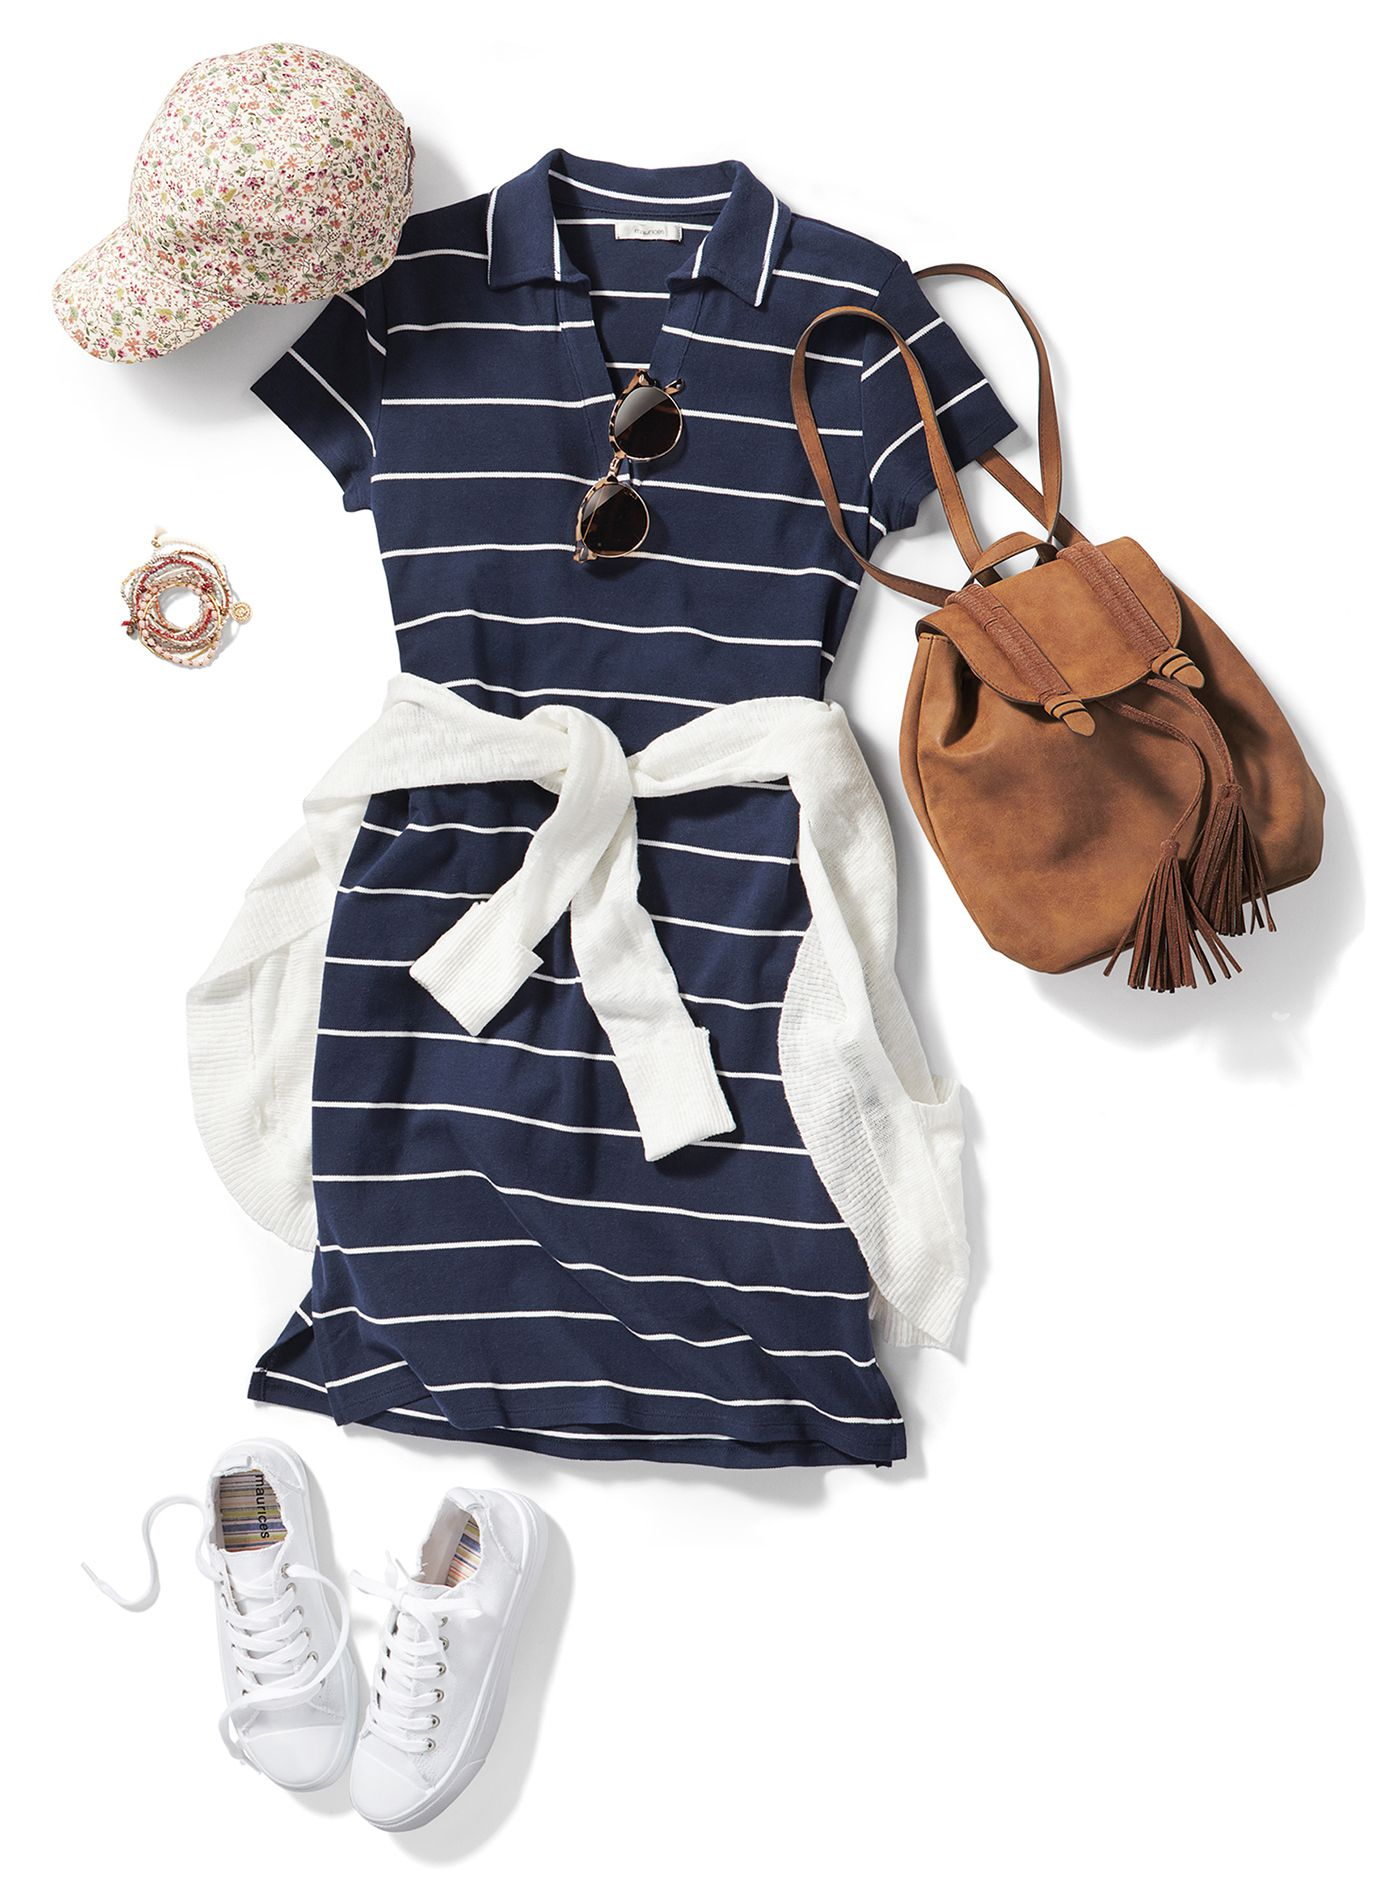 096ca4e3f6d Maurices blog - Spring Outfit Ideas